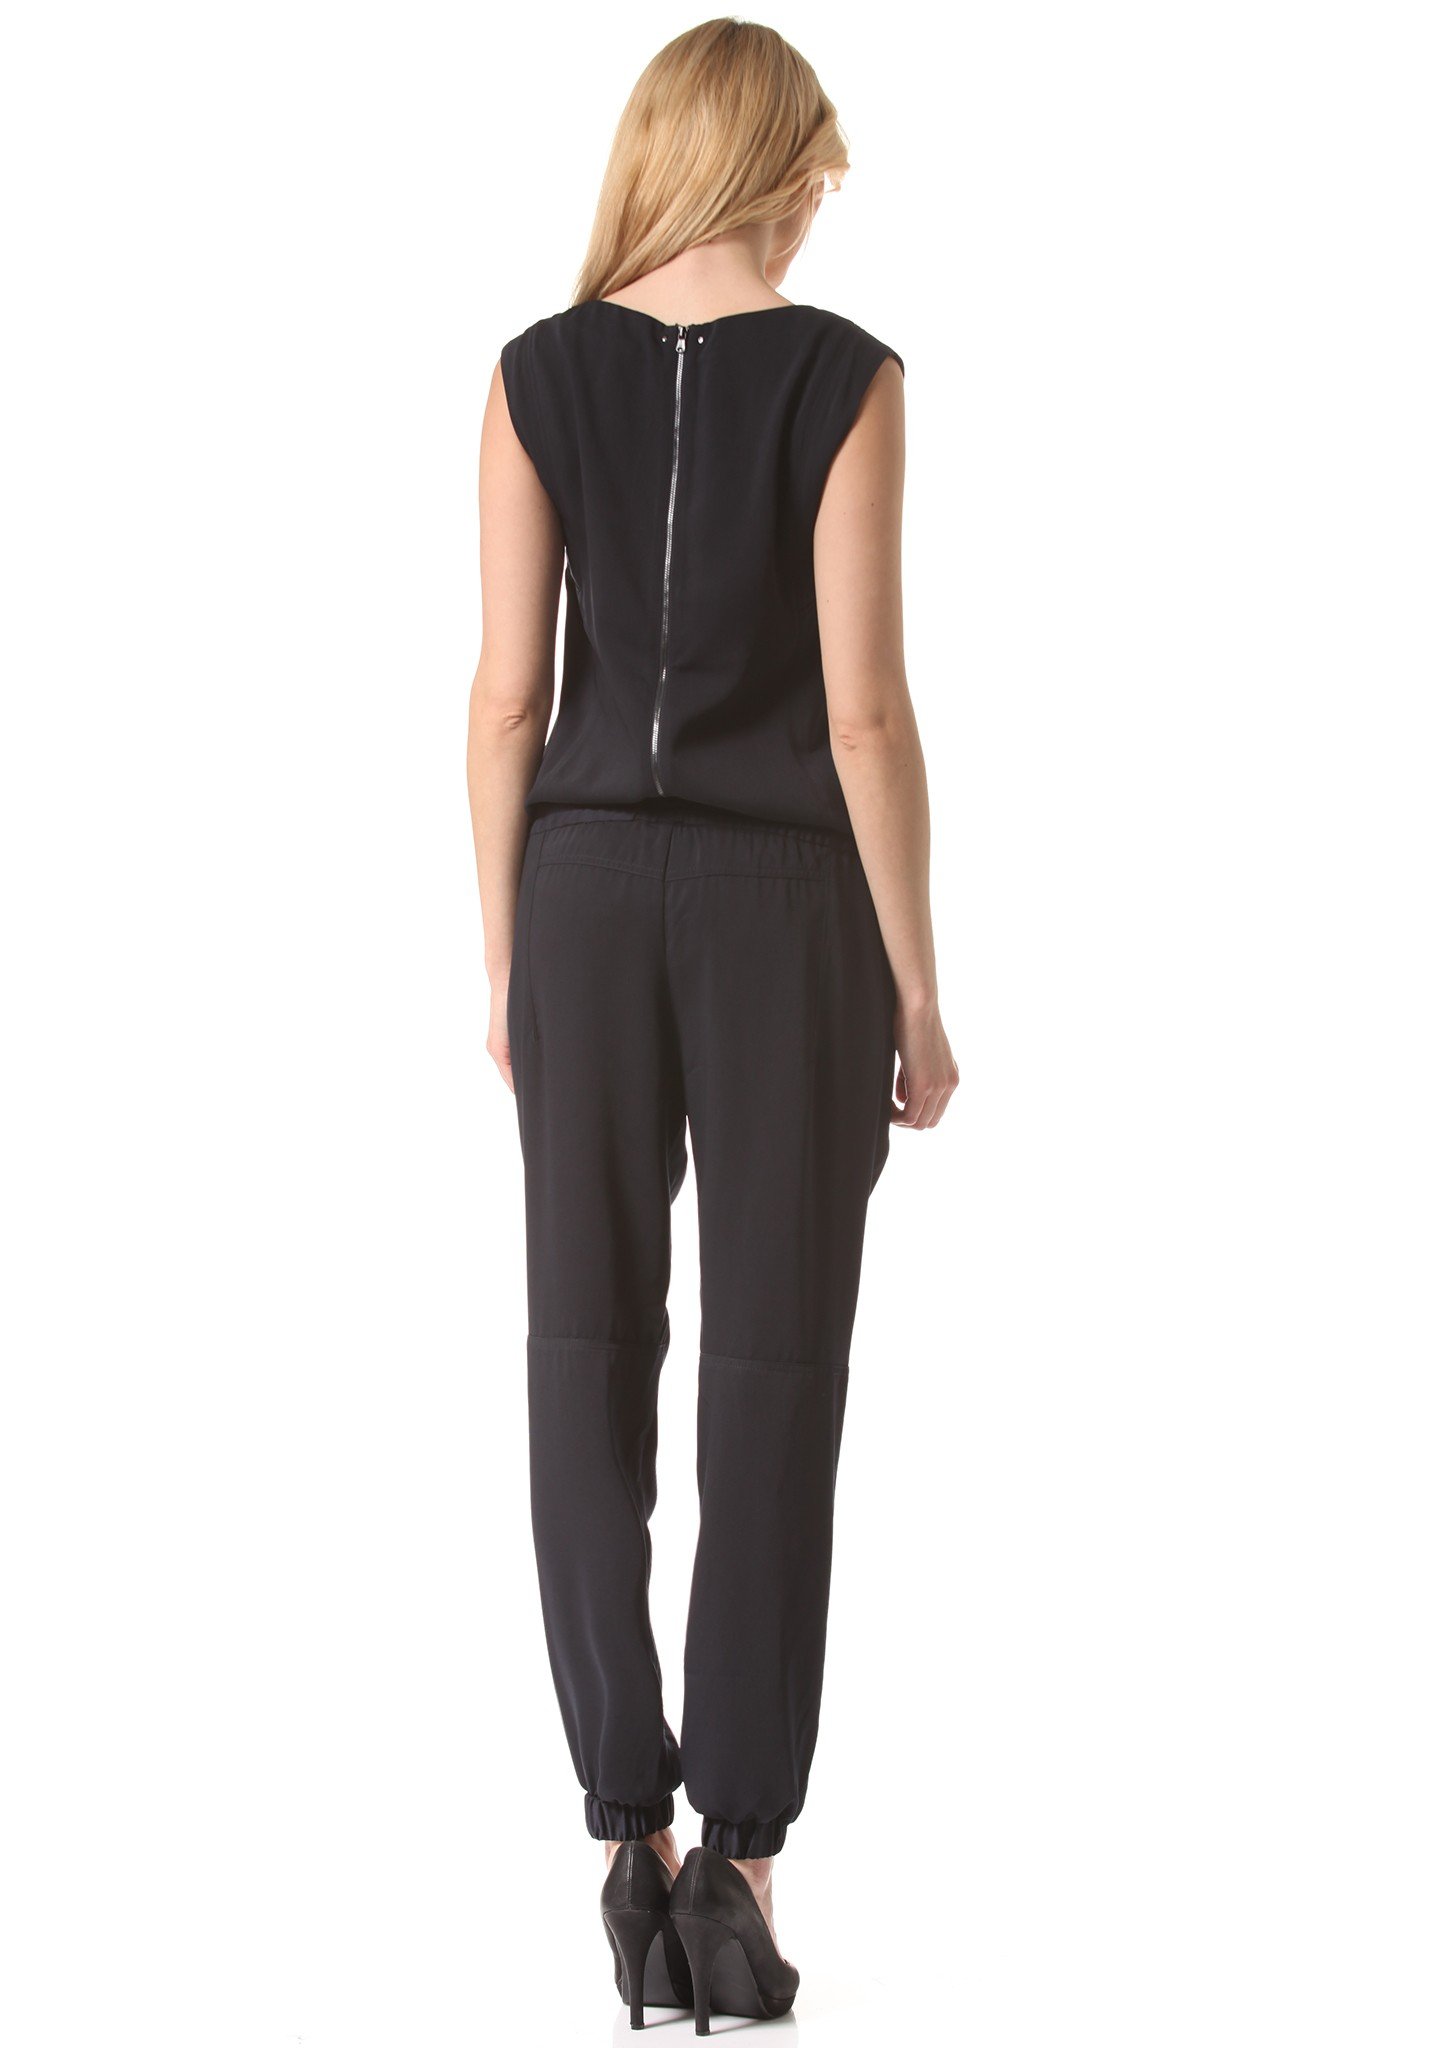 neu g star numu jumpsuit damen overall ebay. Black Bedroom Furniture Sets. Home Design Ideas